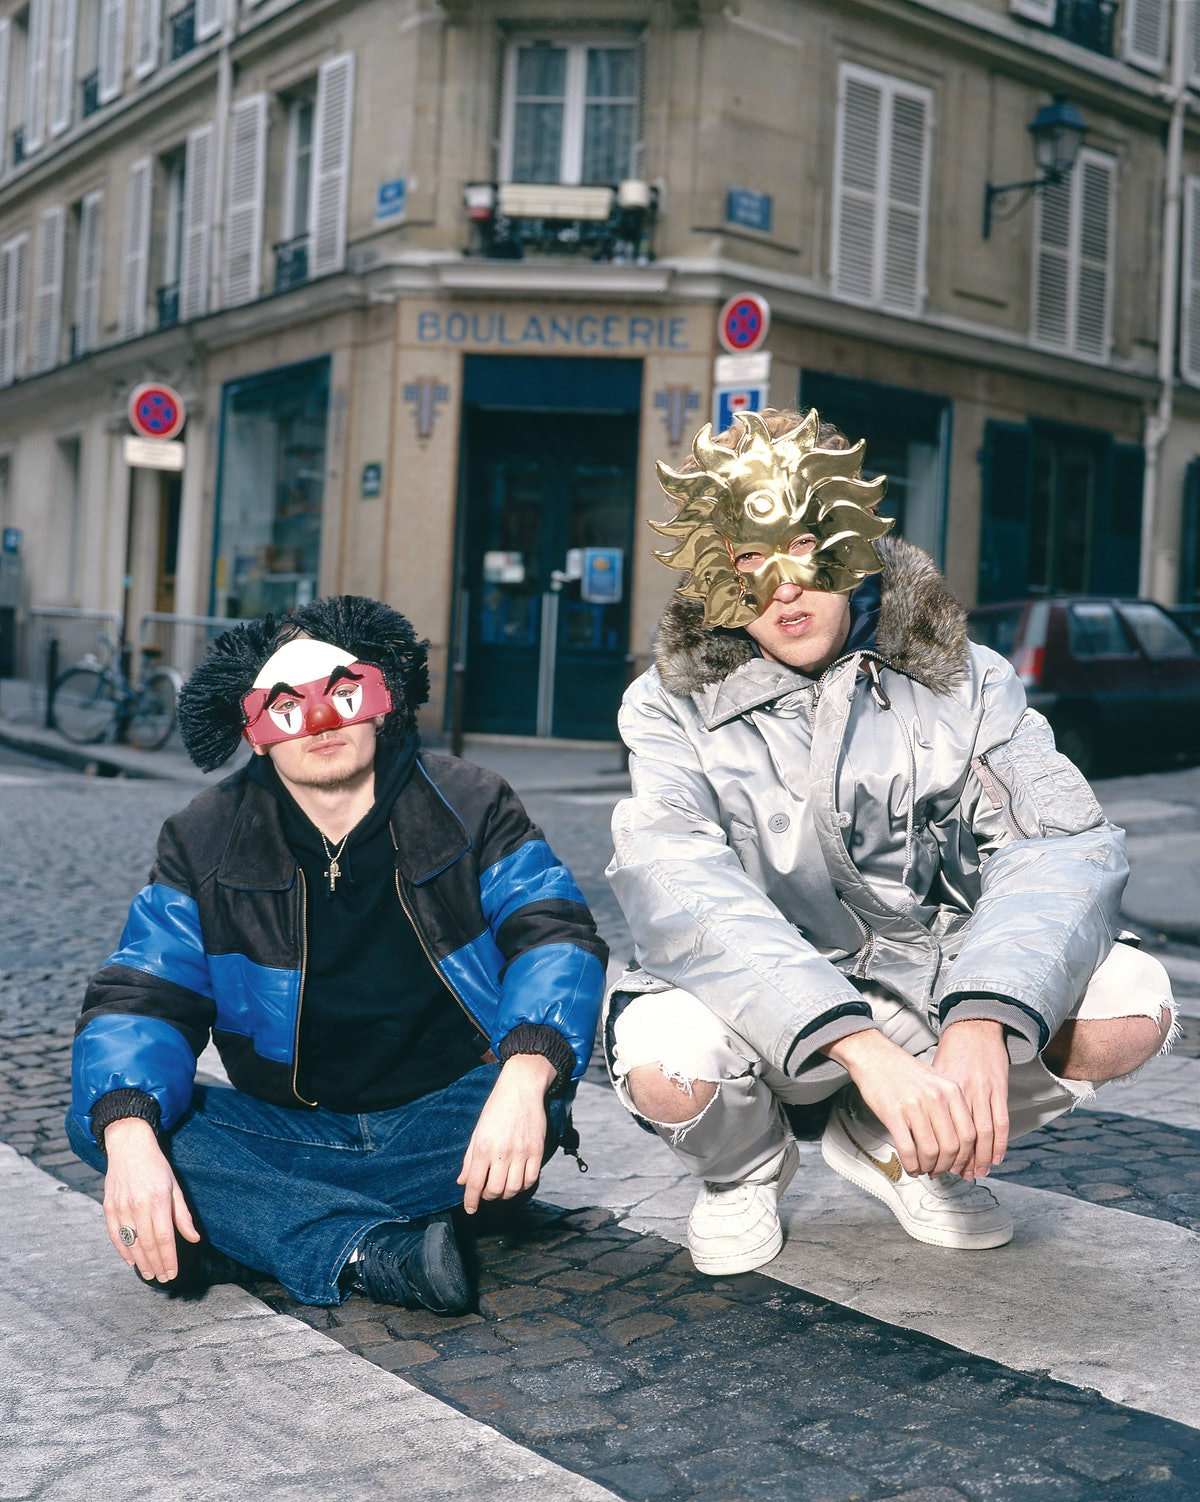 Early photo of Daft Punk in masks.